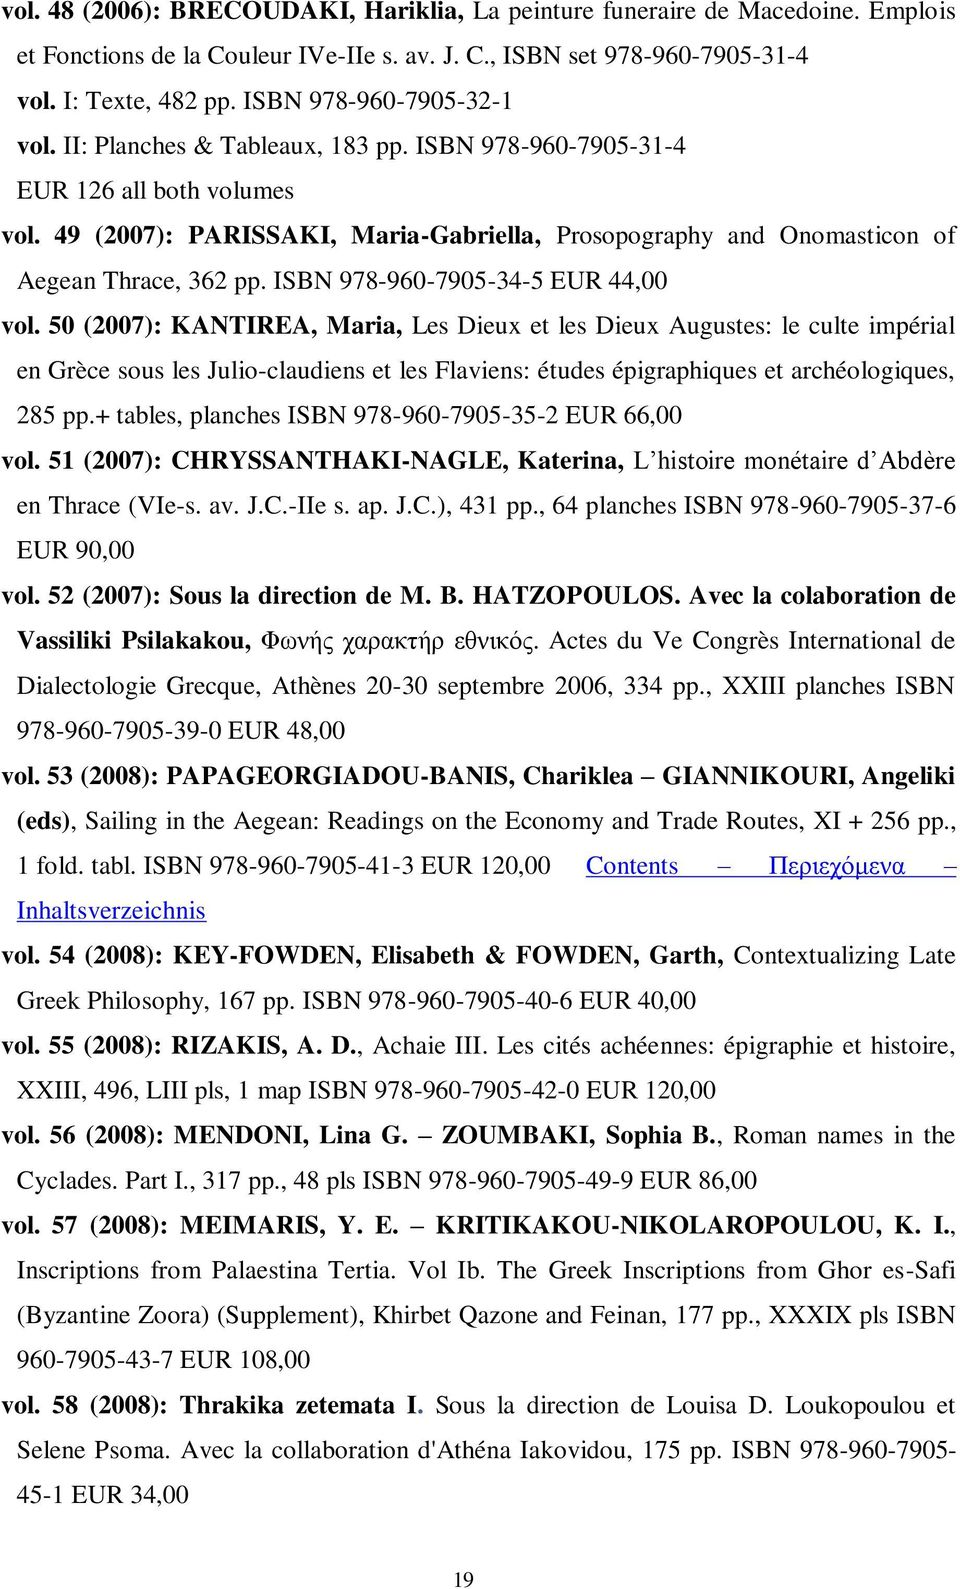 49 (2007): PARISSAKI, Maria-Gabriella, Prosopography and Onomasticon of Aegean Thrace, 362 pp. ISBN 978-960-7905-34-5 EUR 44,00 vol.